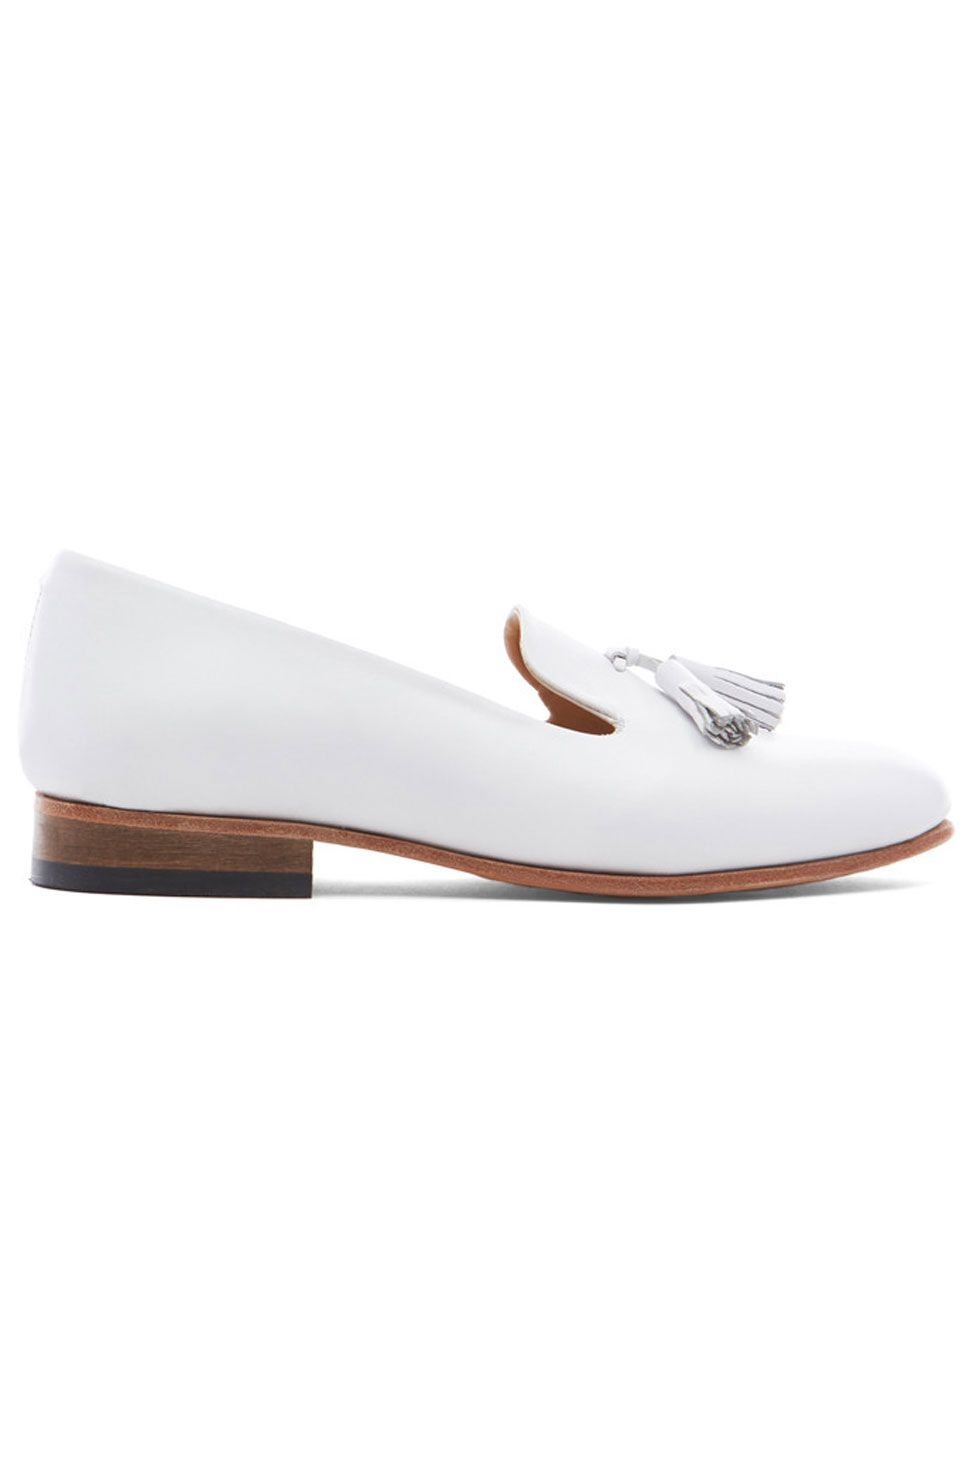 "<!--StartFragment-->Dieppa Restrepo Gaston Loafer, $300&#x3B; <a href="" http://www.shopalthouse.com/products/gaston-slip-on-loafer"">shopalthouse.com</a><!--EndFragment-->"